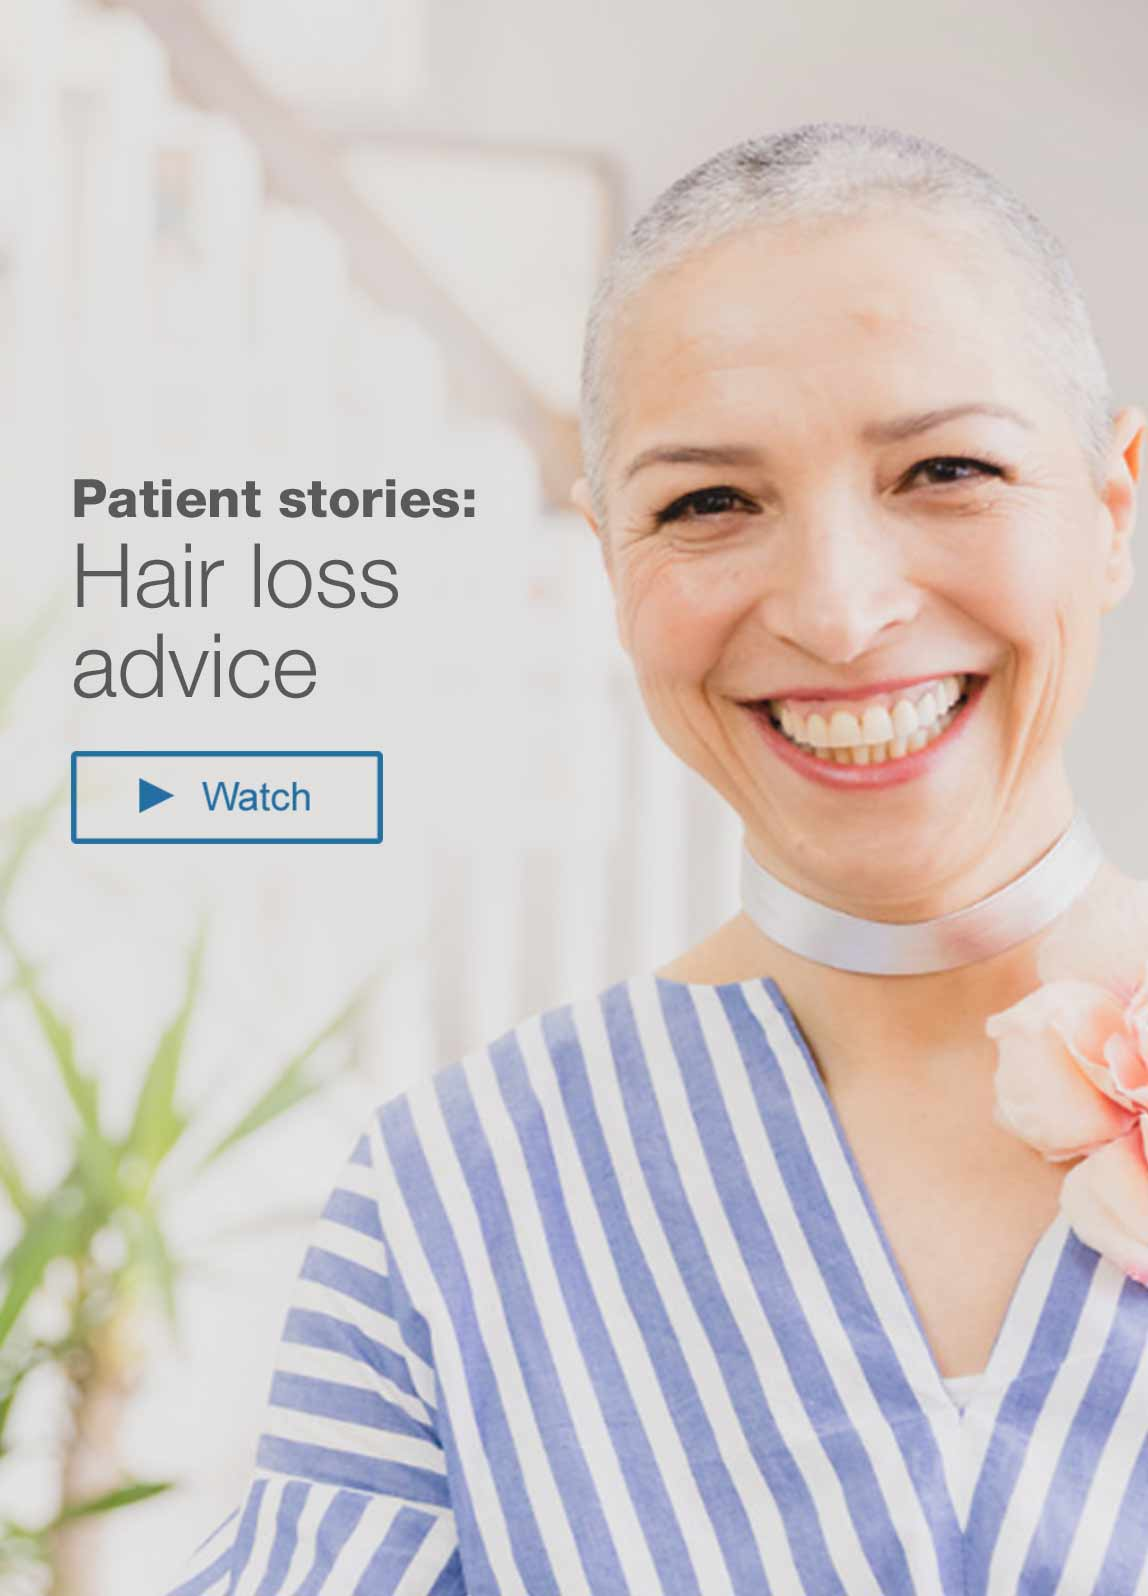 Patient stories: Hair loss advice. Watch.